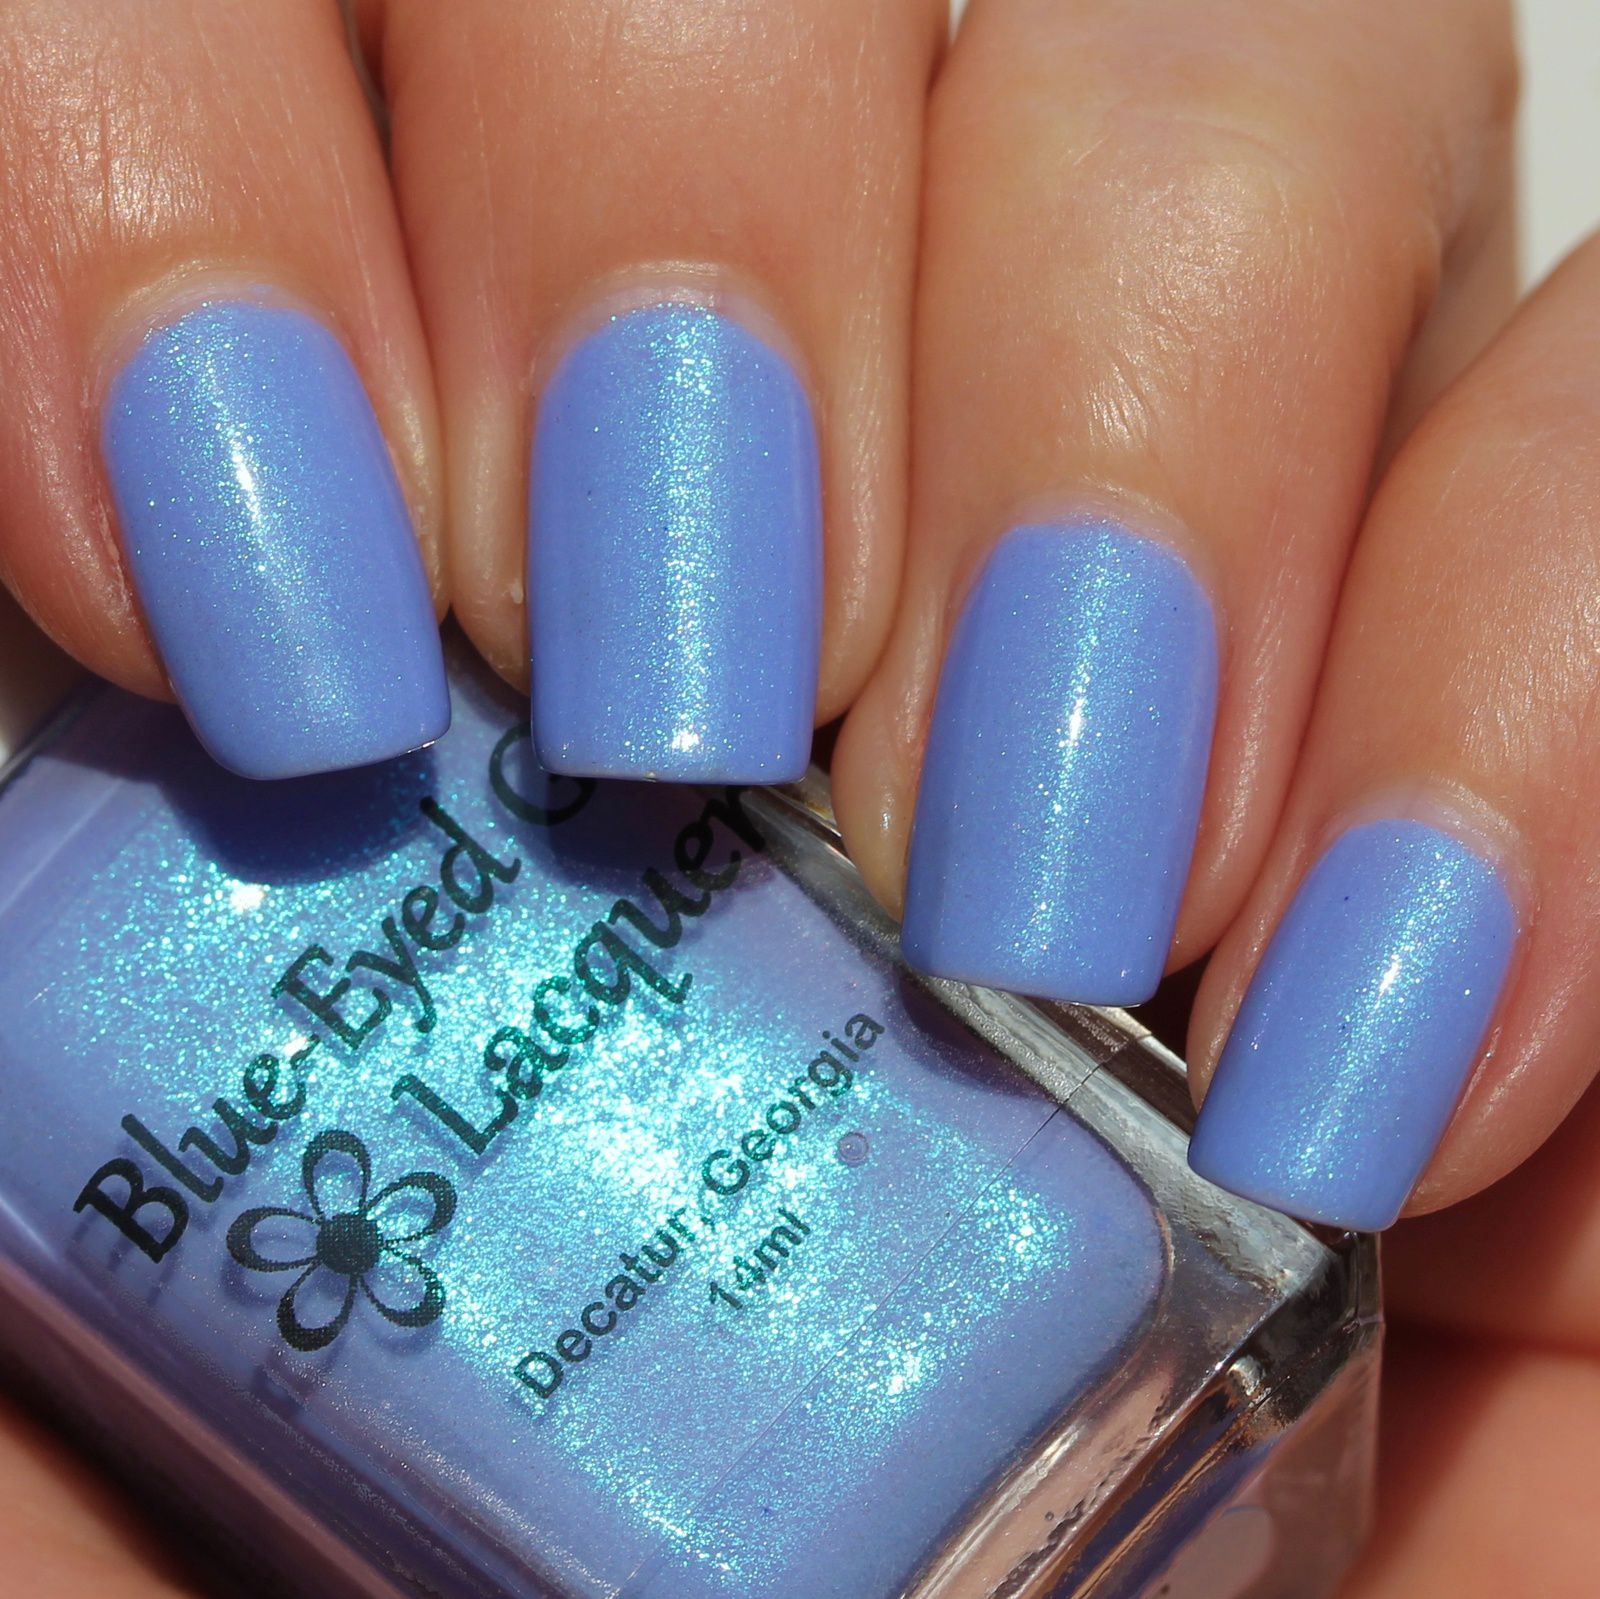 Duri Rejuvacote / Blue-Eyed Girl Lacquer Sordid End / Sally Hansen Miracle Gel Top Coat